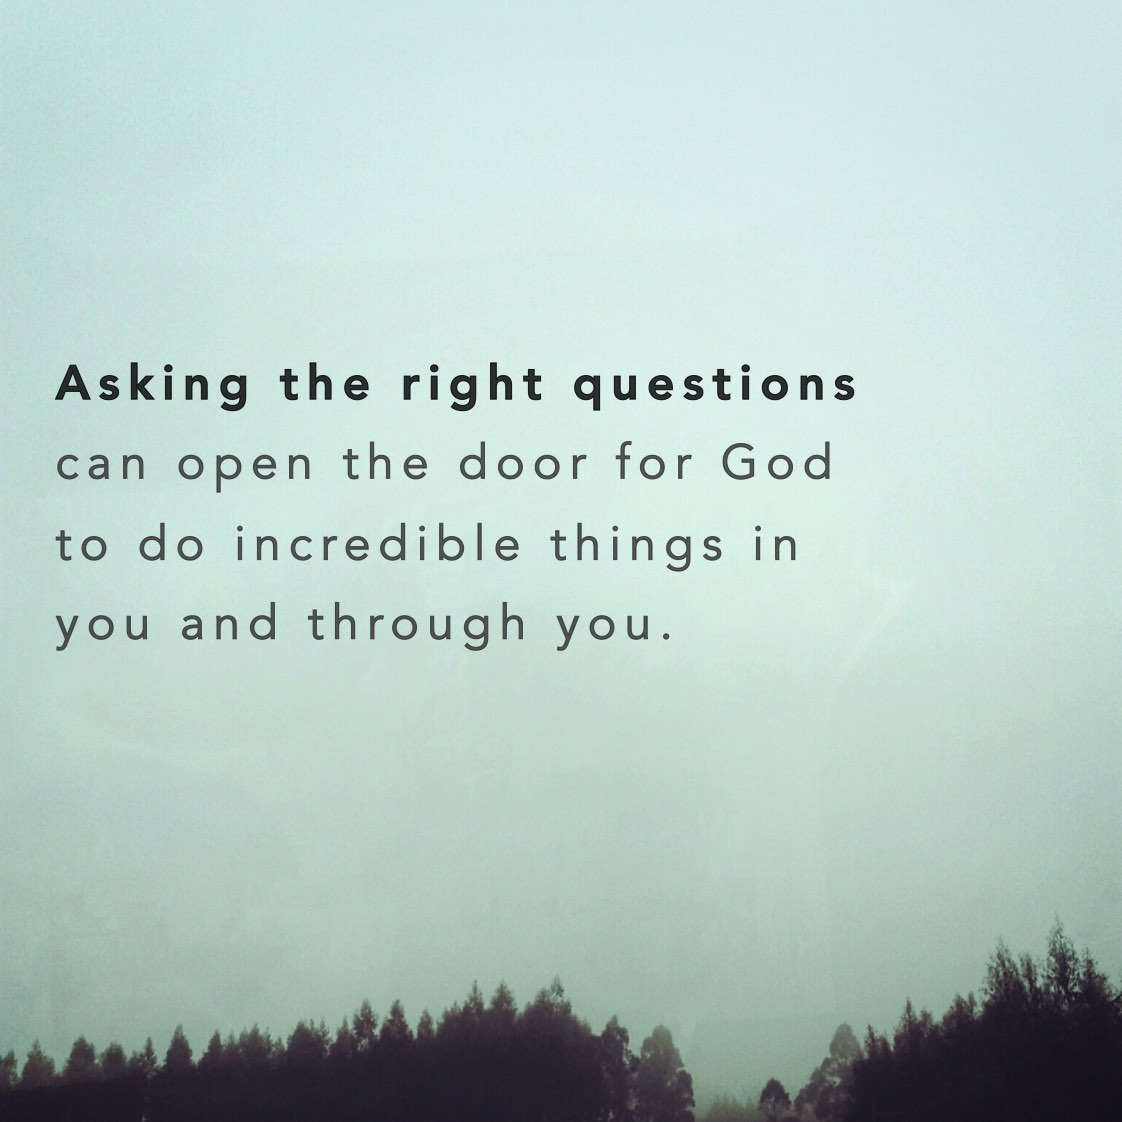 Asking the right questions can open the door for God to do incredible things in you and through you.